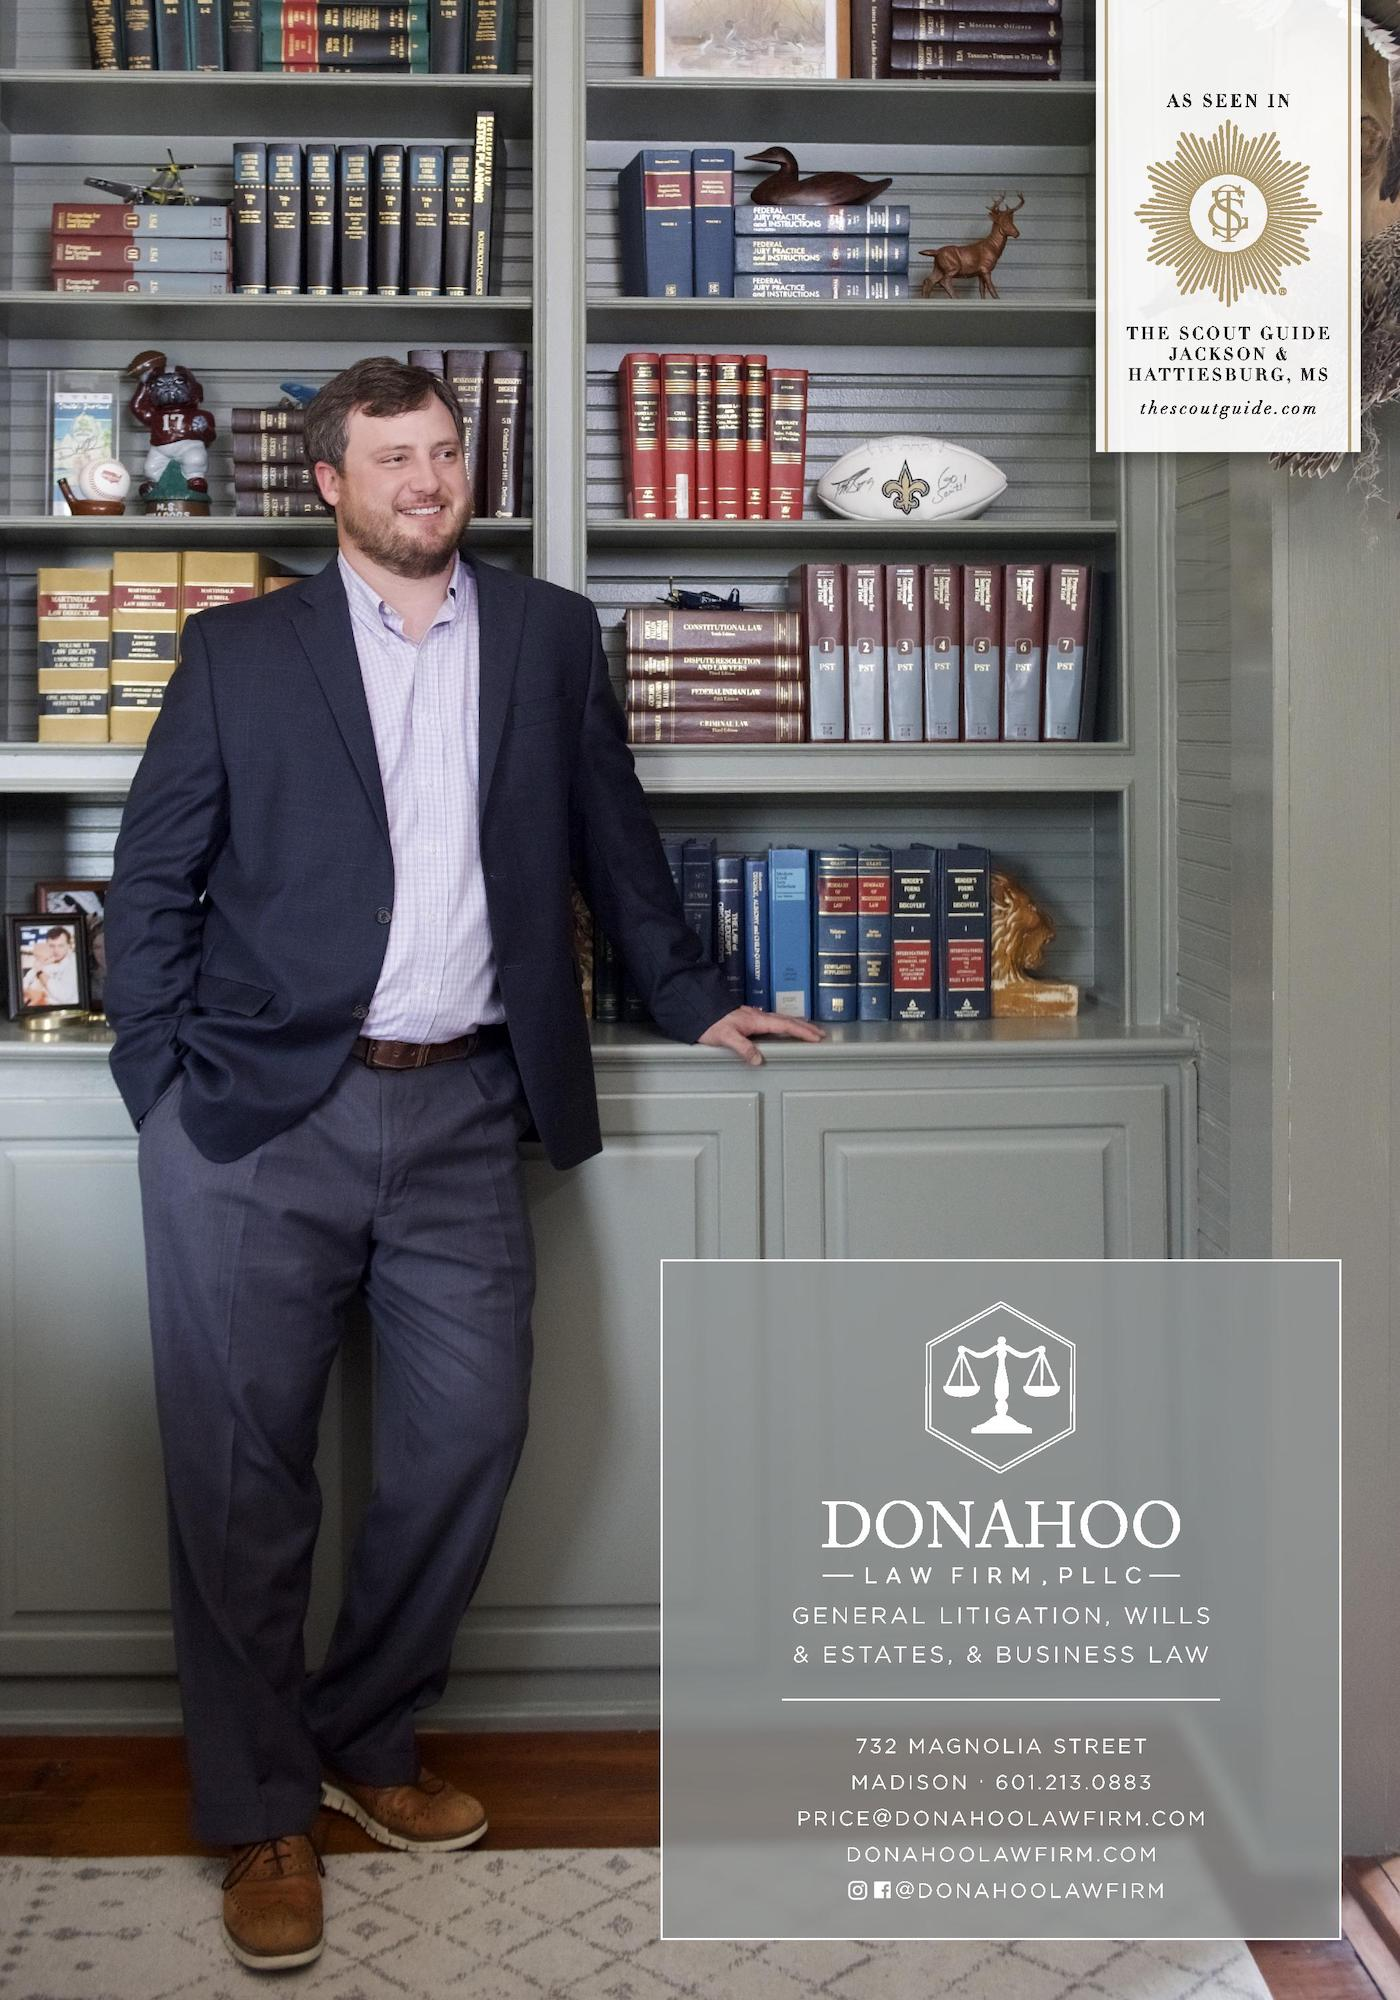 Donahoo Law Firm as seen in The Scout Guide Jackson